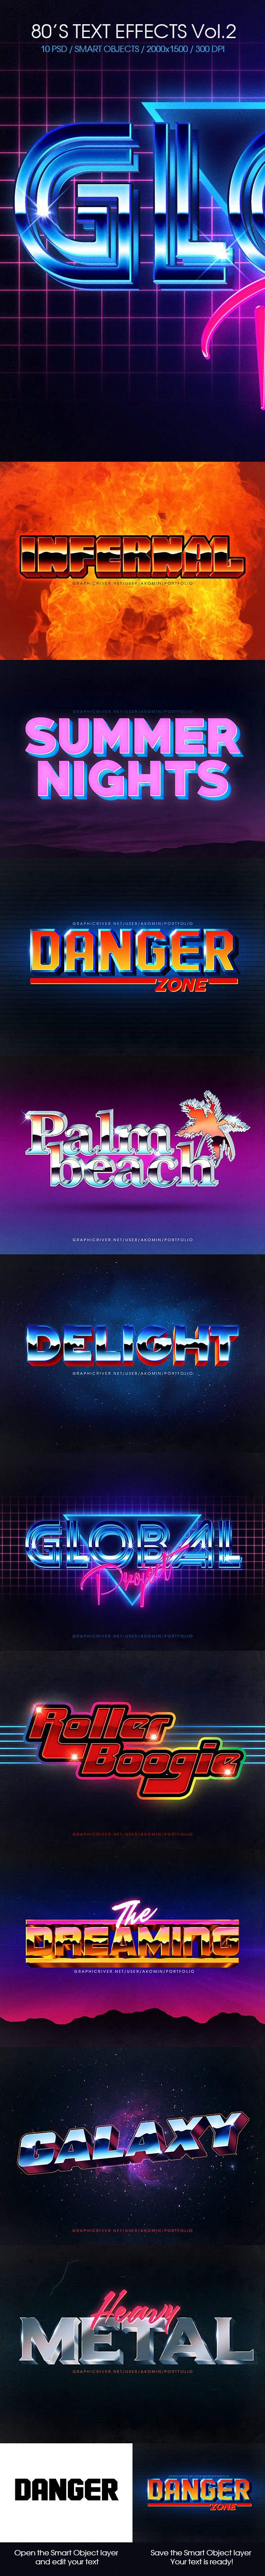 80's Text Effects Vol.2